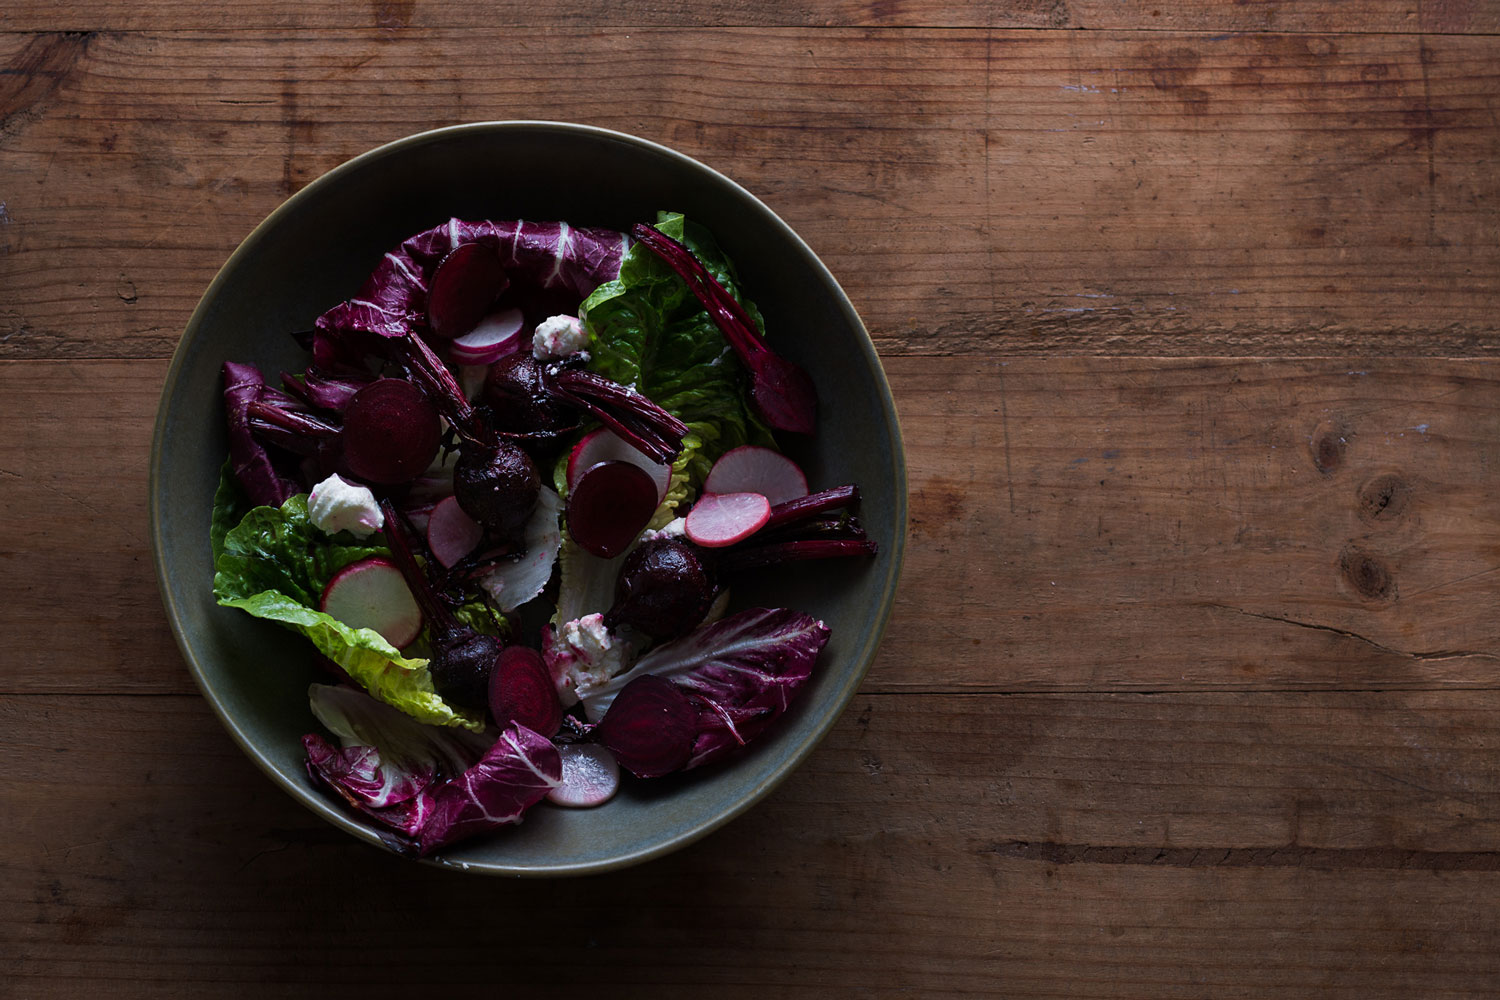 photograph-of-pot-and-pan-culinary-tailoring-beetroots-taken-by-sarah-anderson-photography.jpg